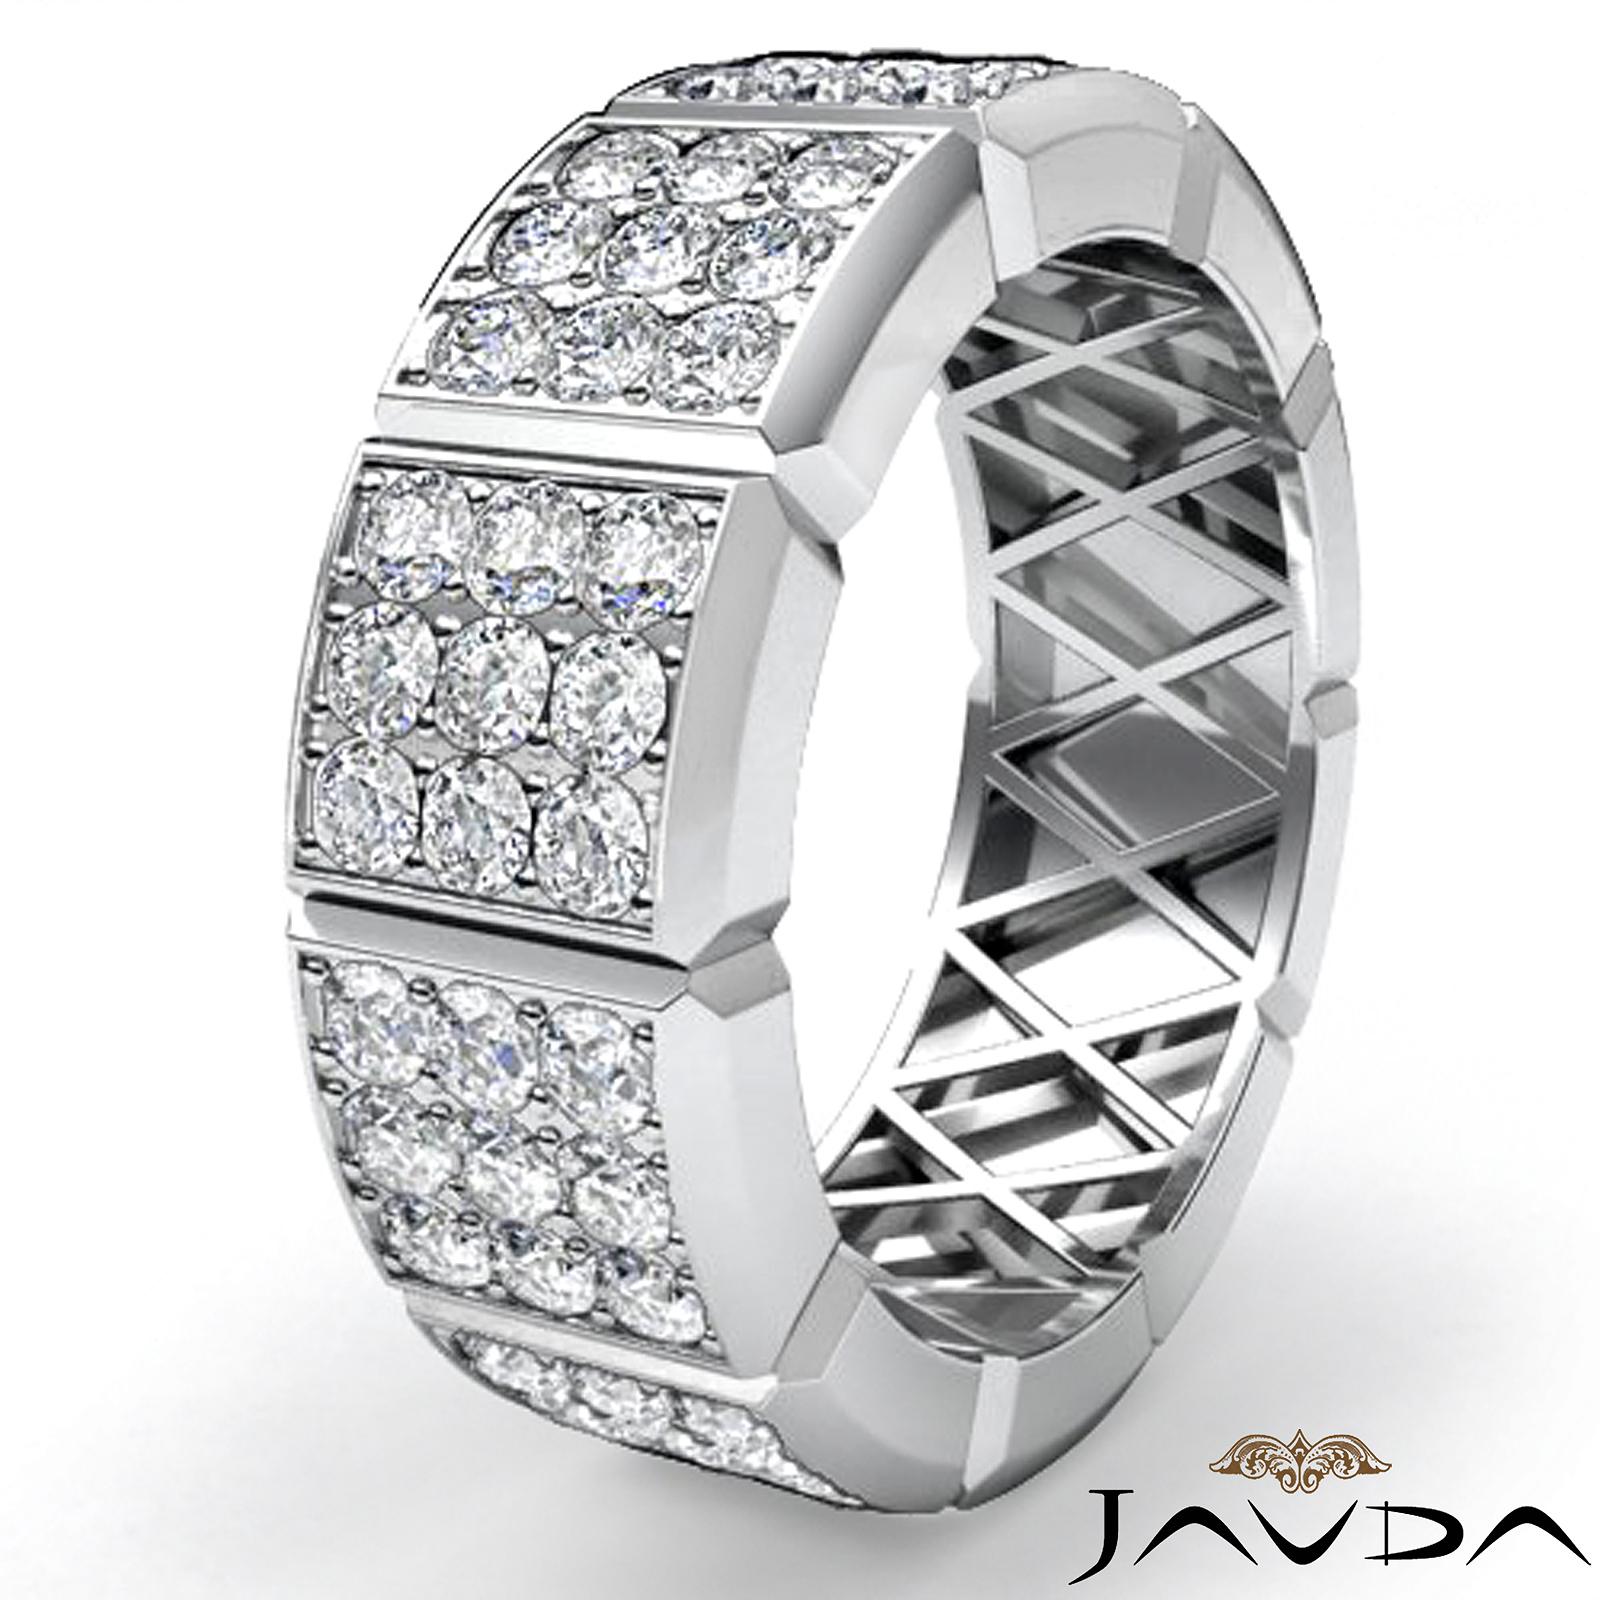 Javda – 1.90 Ct. 3 Row Round Diamond Vertical Cuts Men's Eternity Wedding  Band – Walmart Inside Latest Vertical Diamond Row Wedding Bands (Gallery 18 of 25)